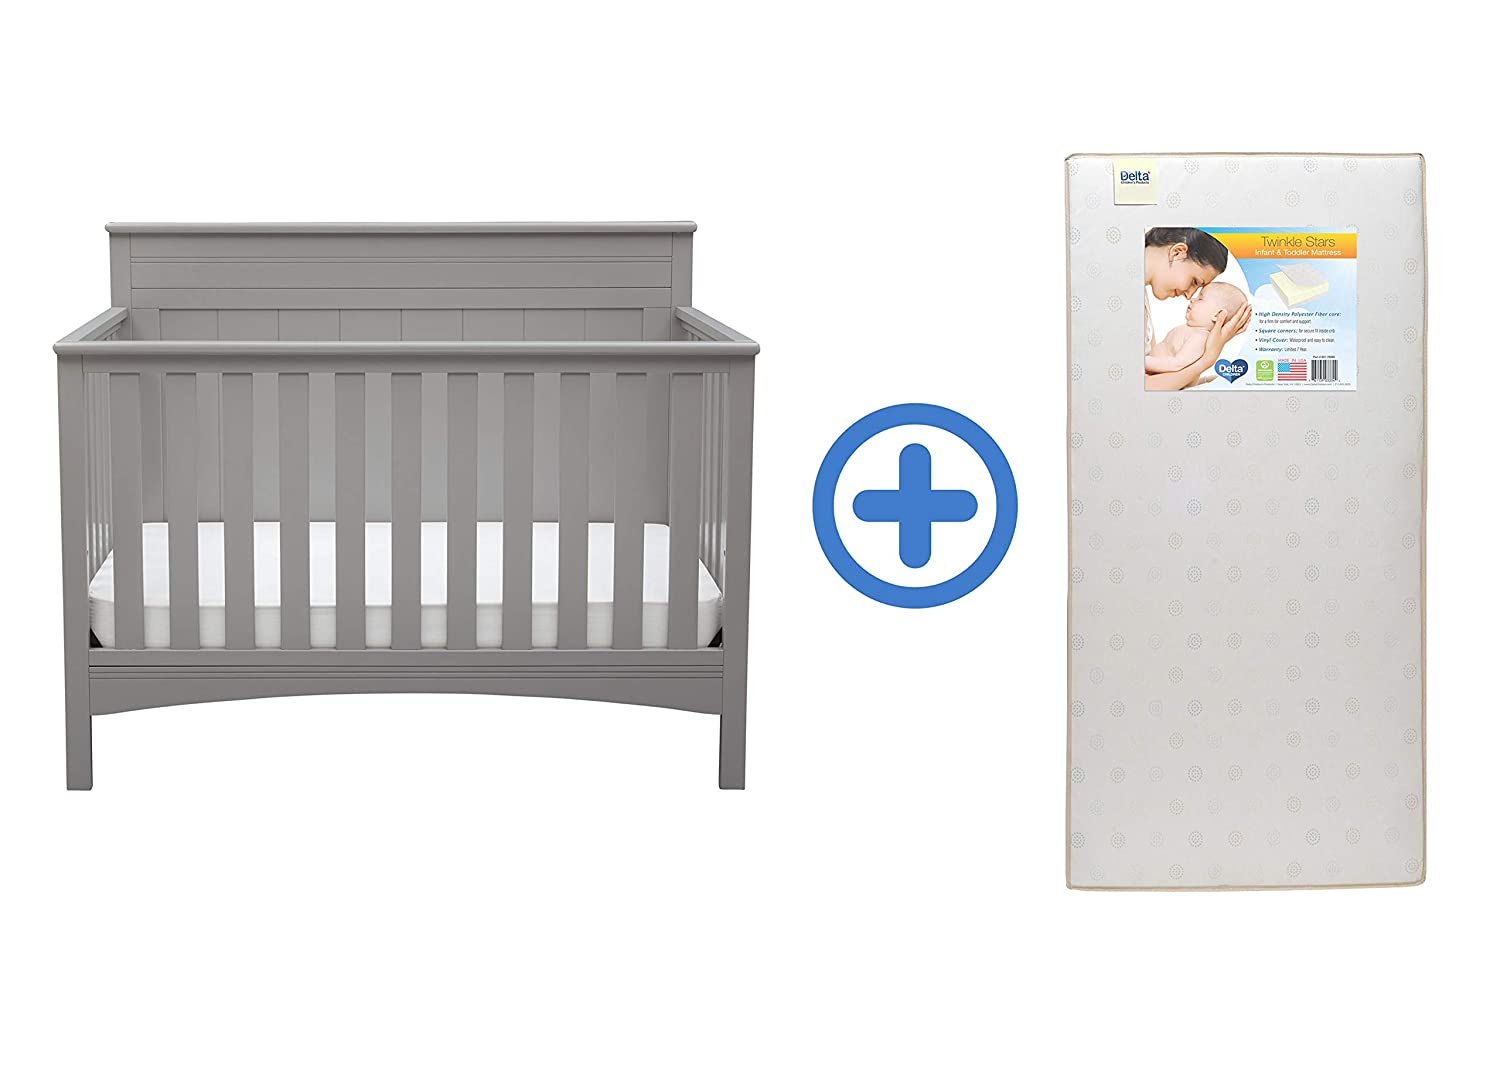 Baby Crib Mattress Critiques Amazon.com : Delta Children Fancy 4-in-1 Crib, Grey with Twinkle Stars Crib  u0026 Toddler Mattress : Baby